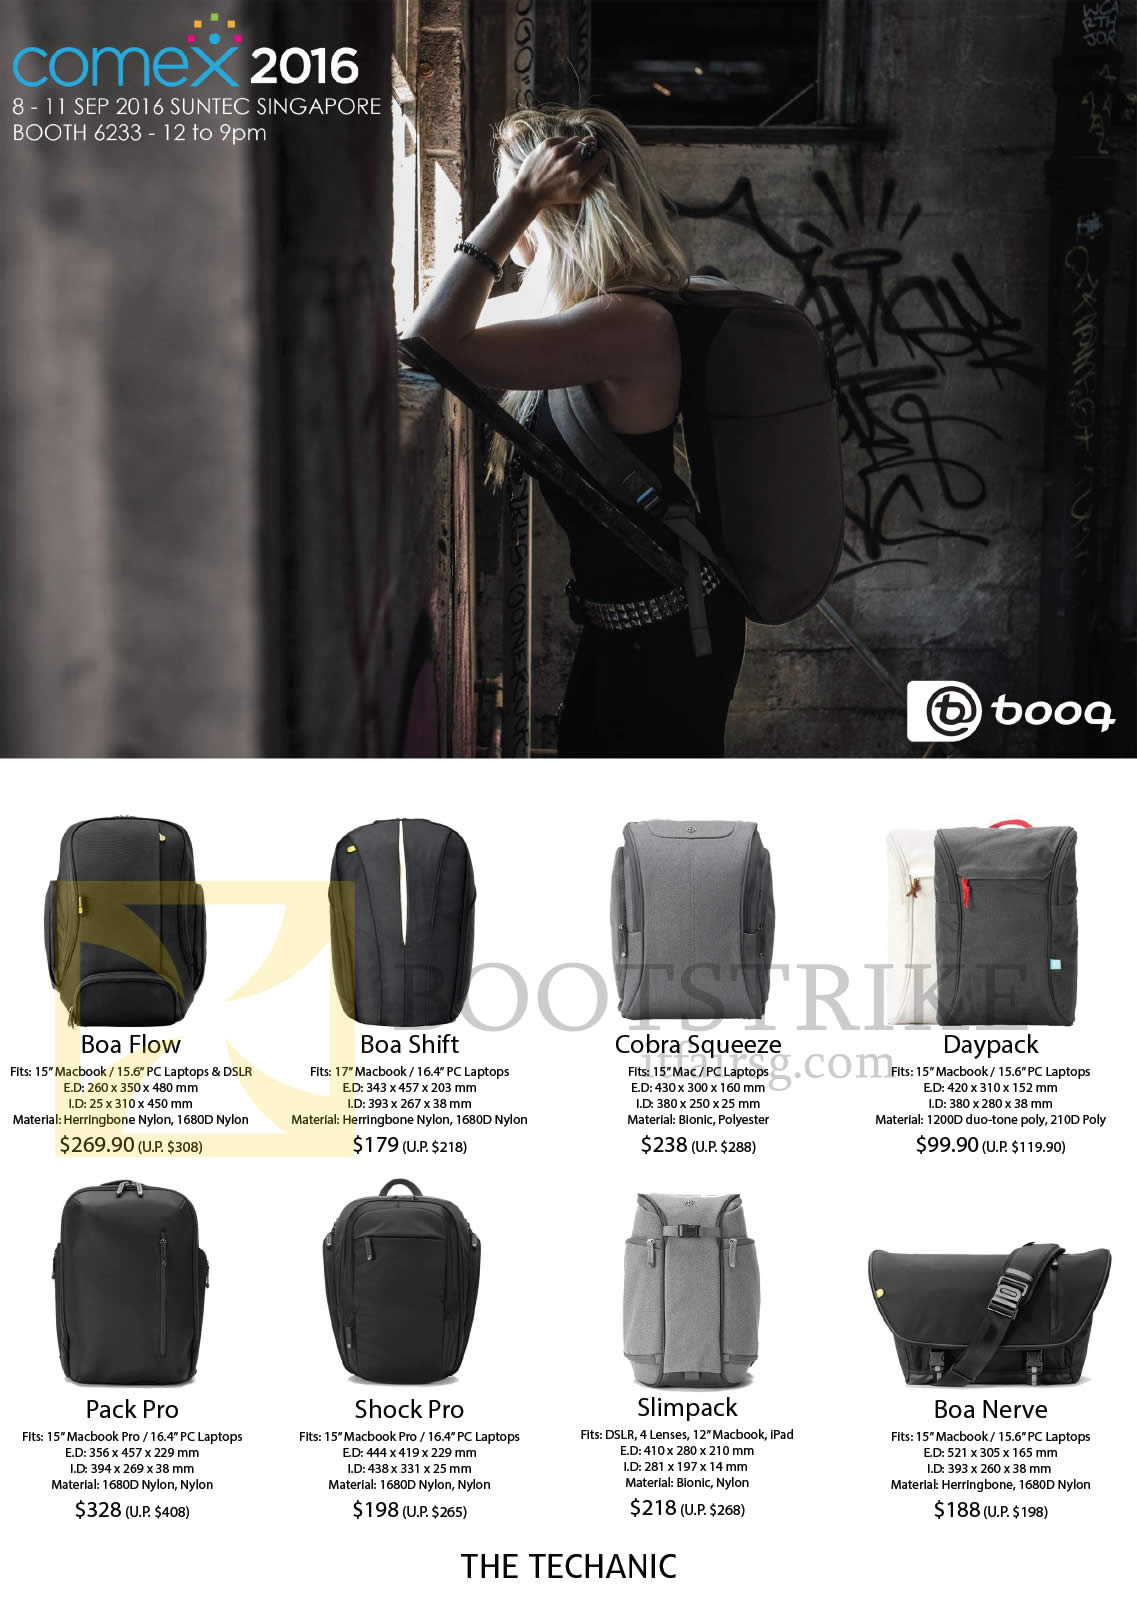 COMEX 2016 price list image brochure of The Techanic Booq Bags Backpacks Boa Flow, Shift, Cobra Squeeze, Daypack, Pack Pro, Shock Pro, Slimpack, Boa Nerve